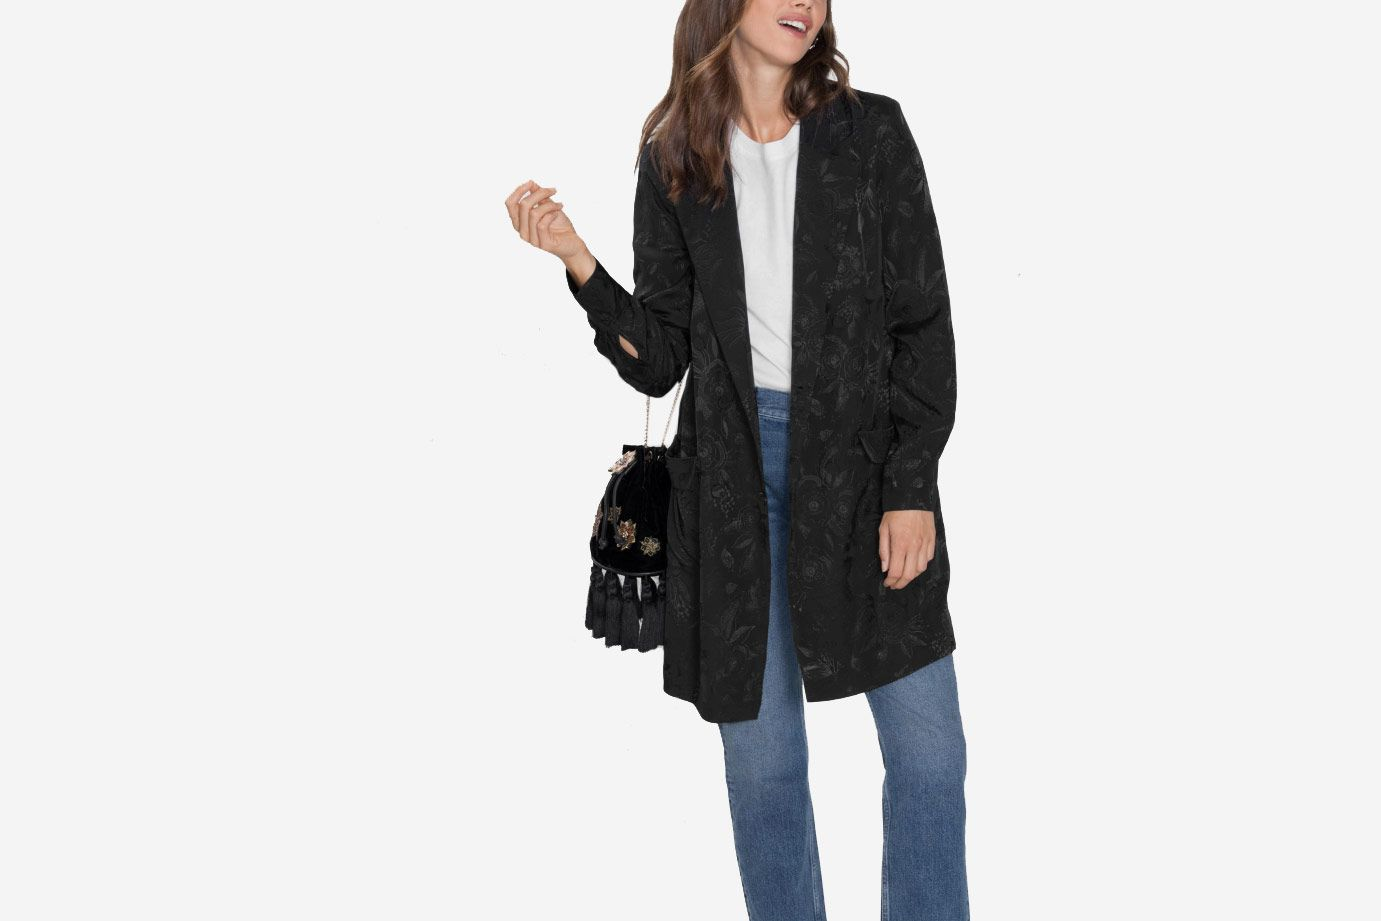 & Other Stories Long-line Blazer